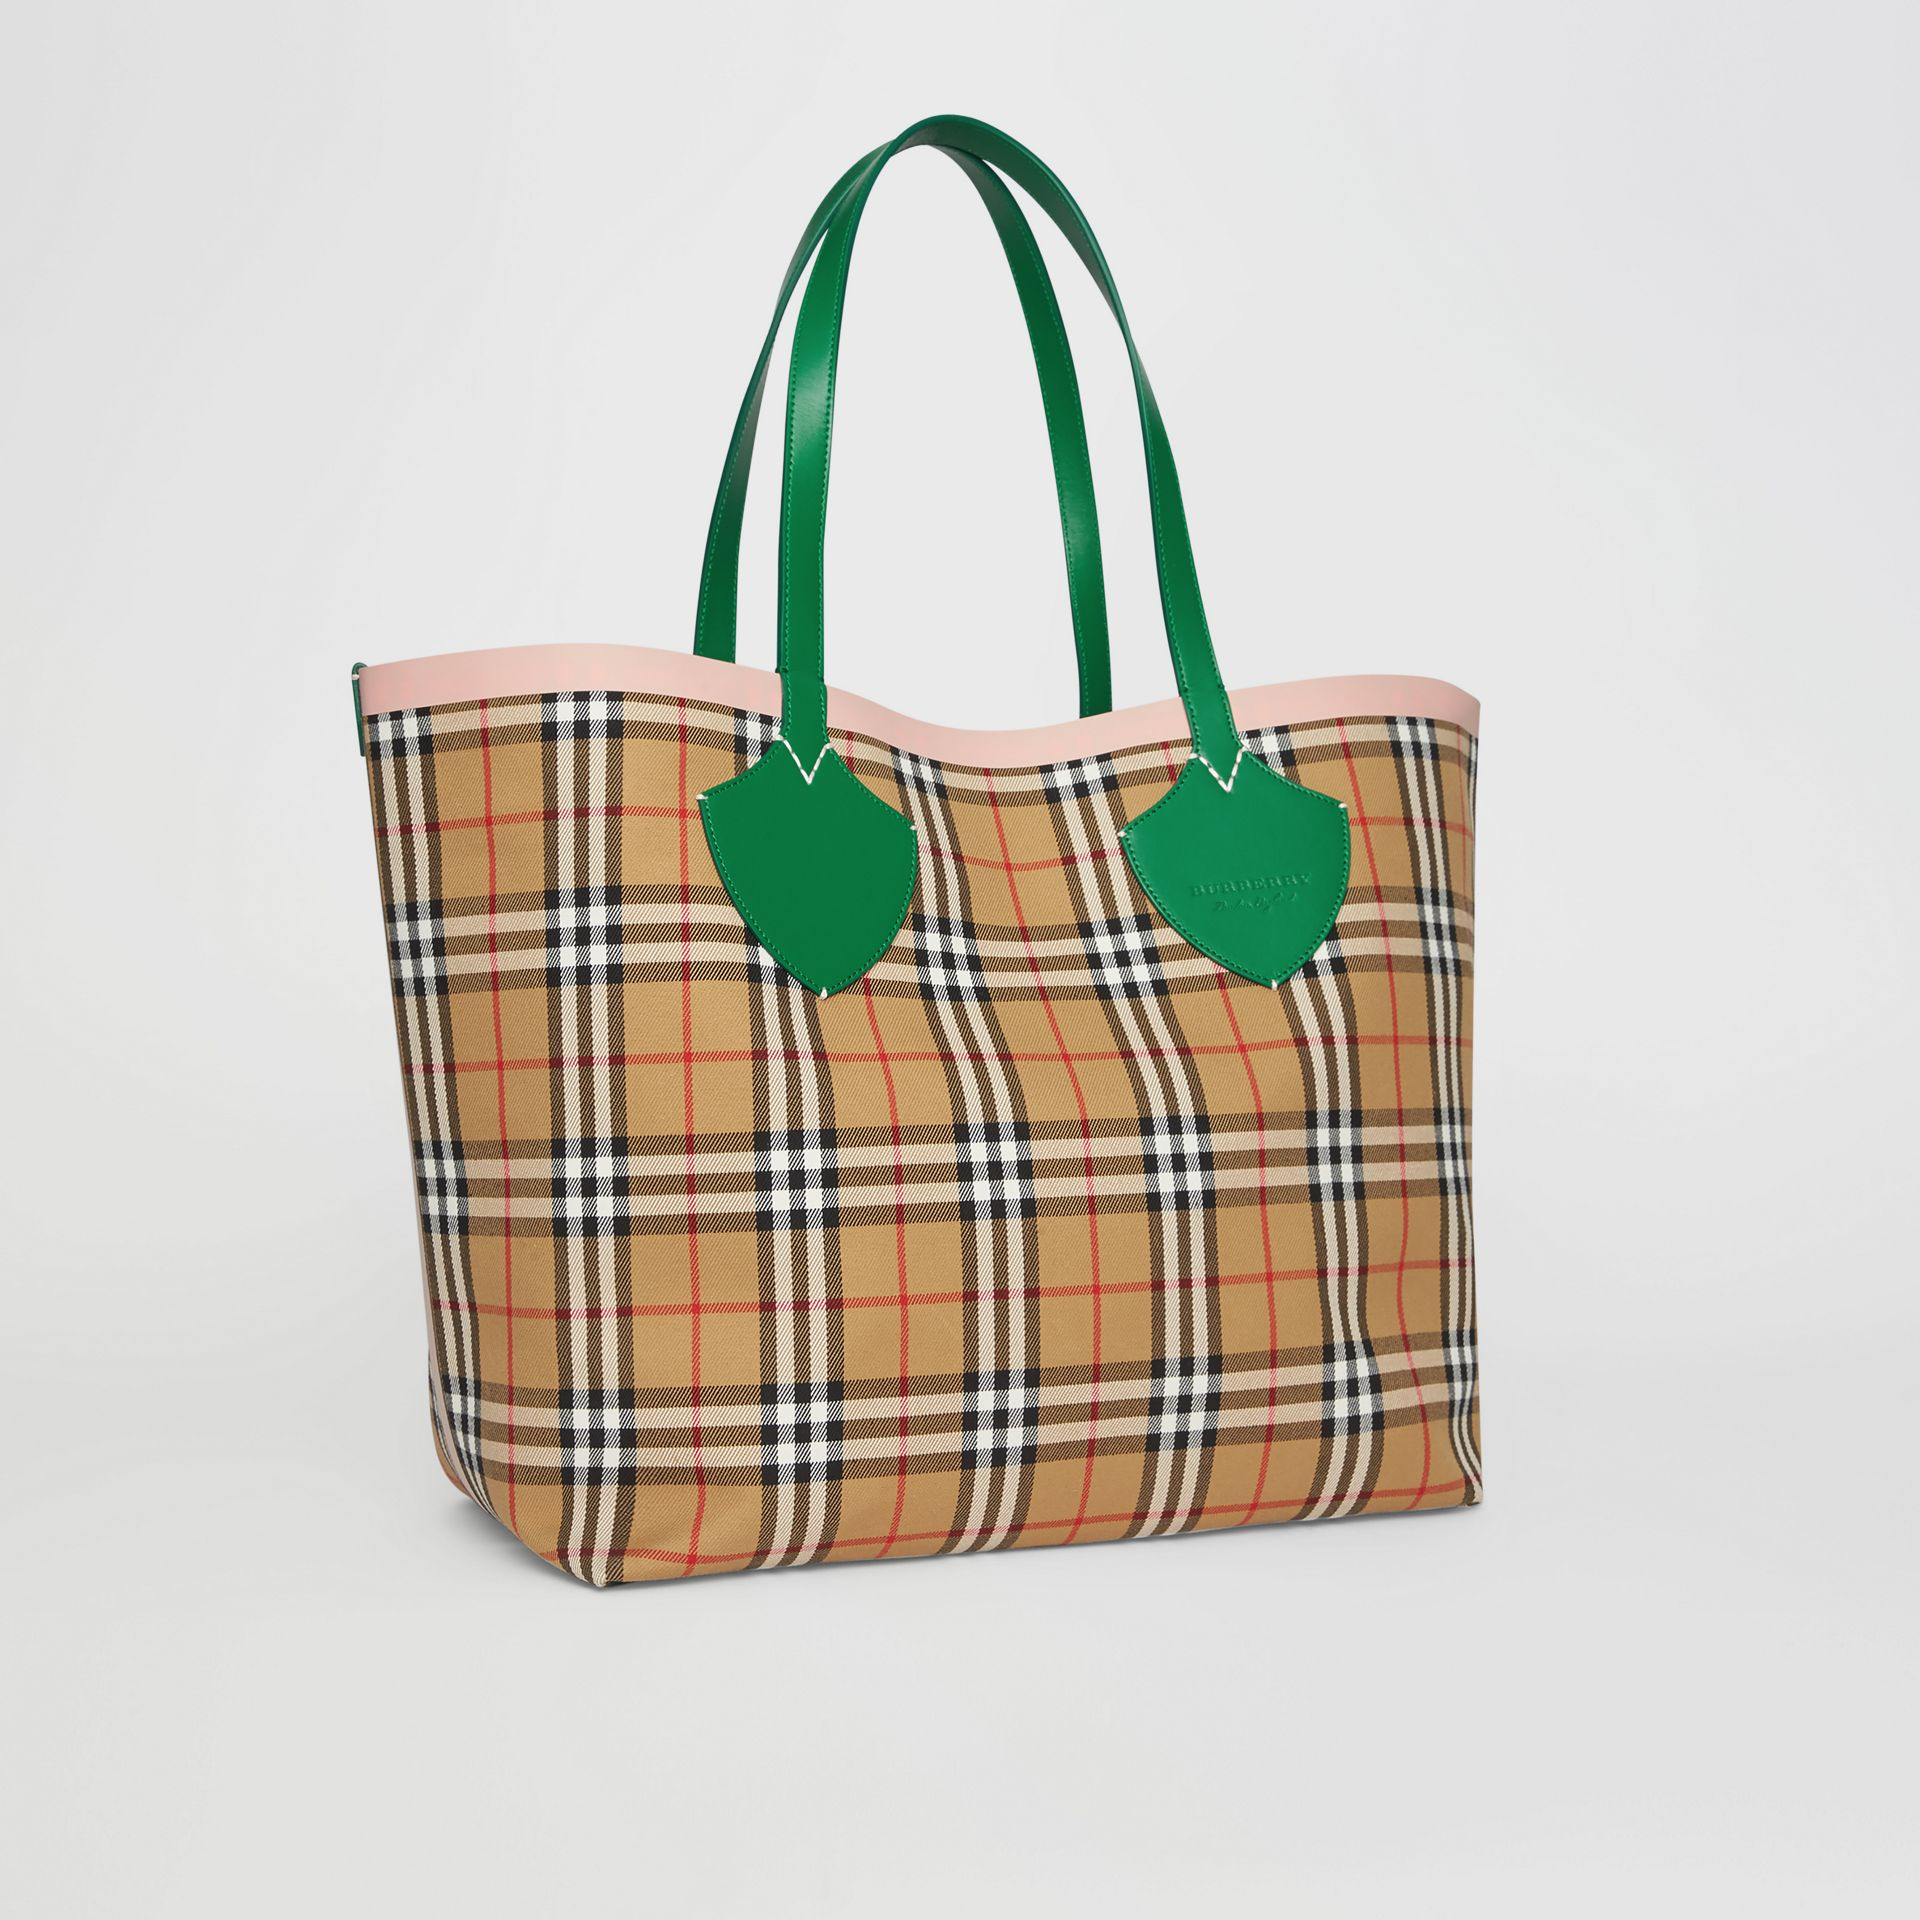 The Giant Reversible Tote in Vintage Check in Palm Green/pink Apricot - Women | Burberry Hong Kong - gallery image 8